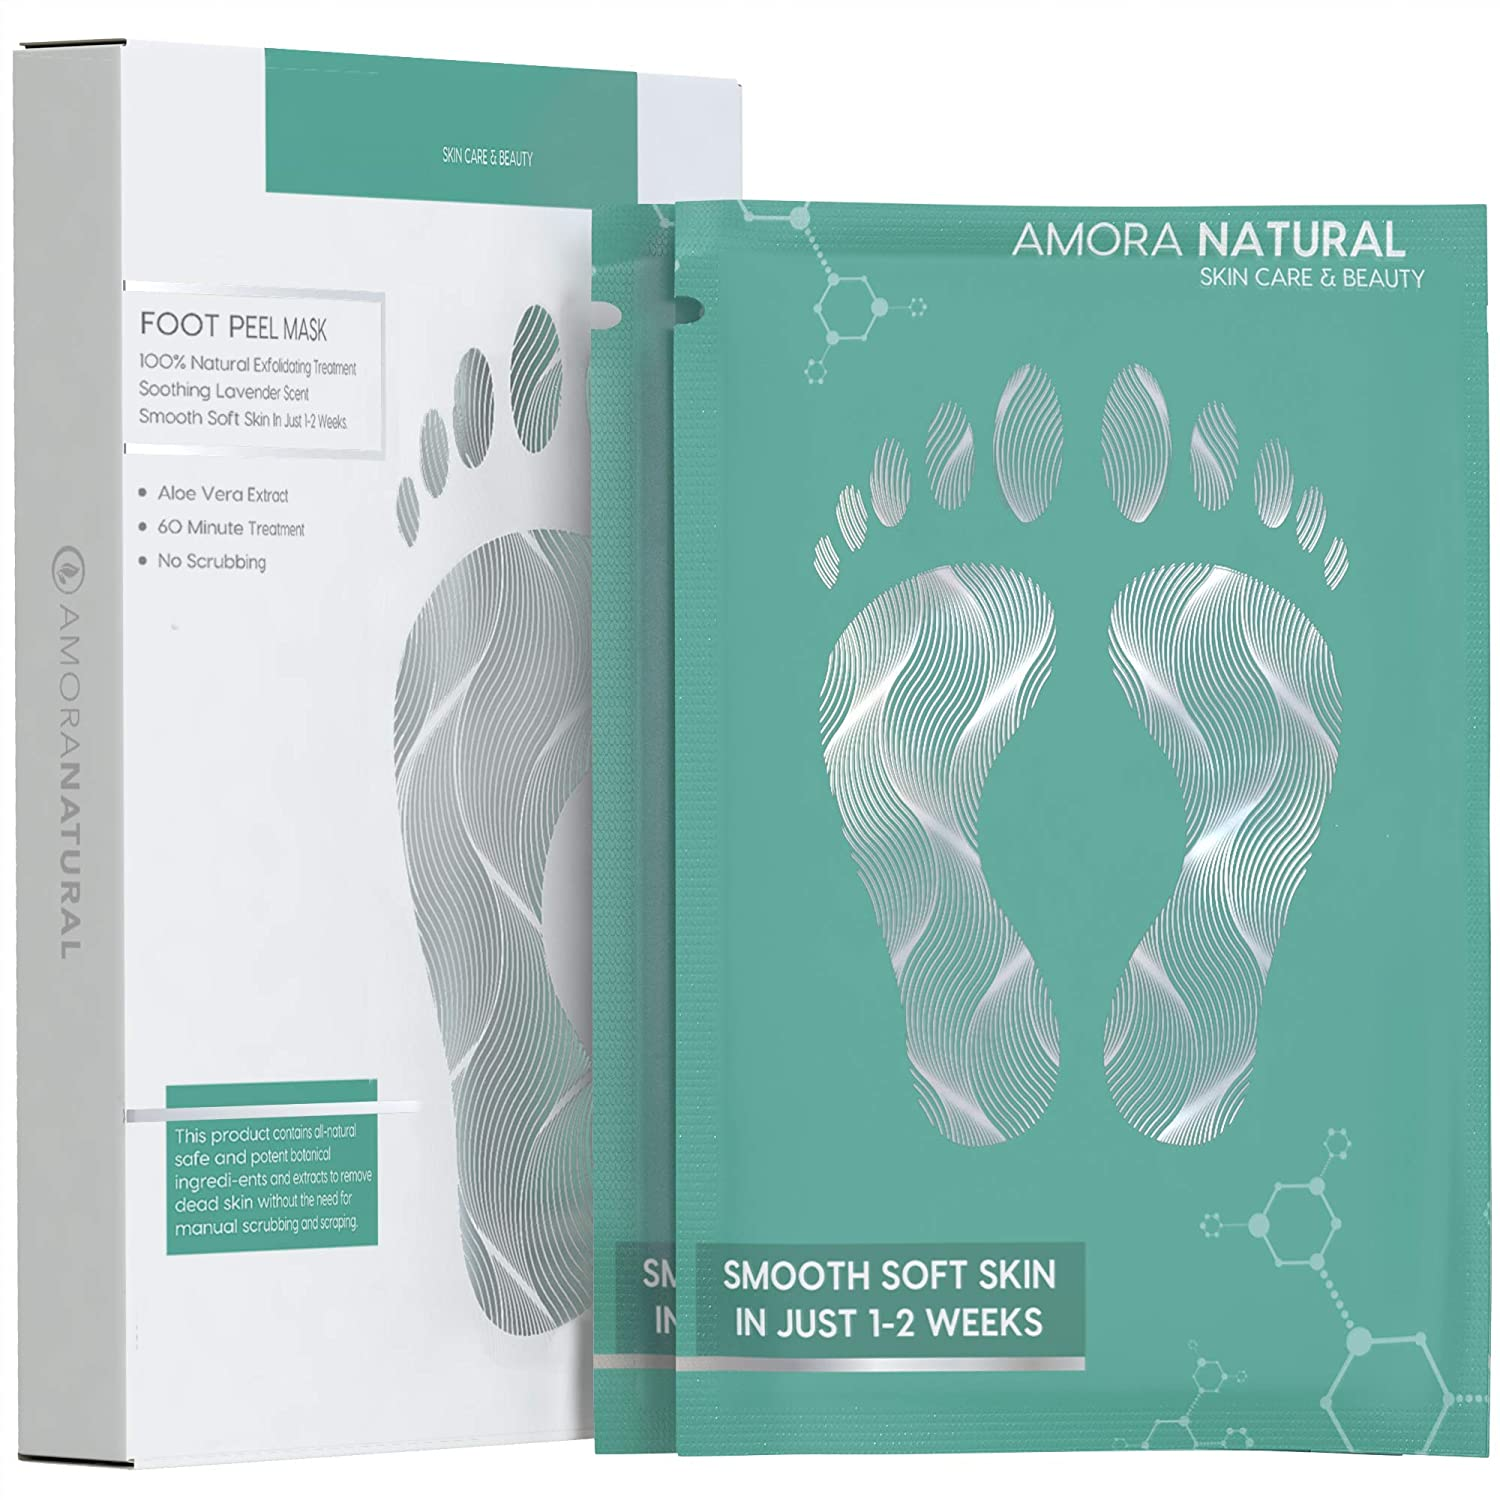 2 Pairs Exfoliating Foot Peel Mask - Smooth Soft Skin in Just 1-2 Weeks - Get Rid of Cracked Heels , Dead Skin , Callus - Natural Treatment - Lavender Scented. Amora Natural